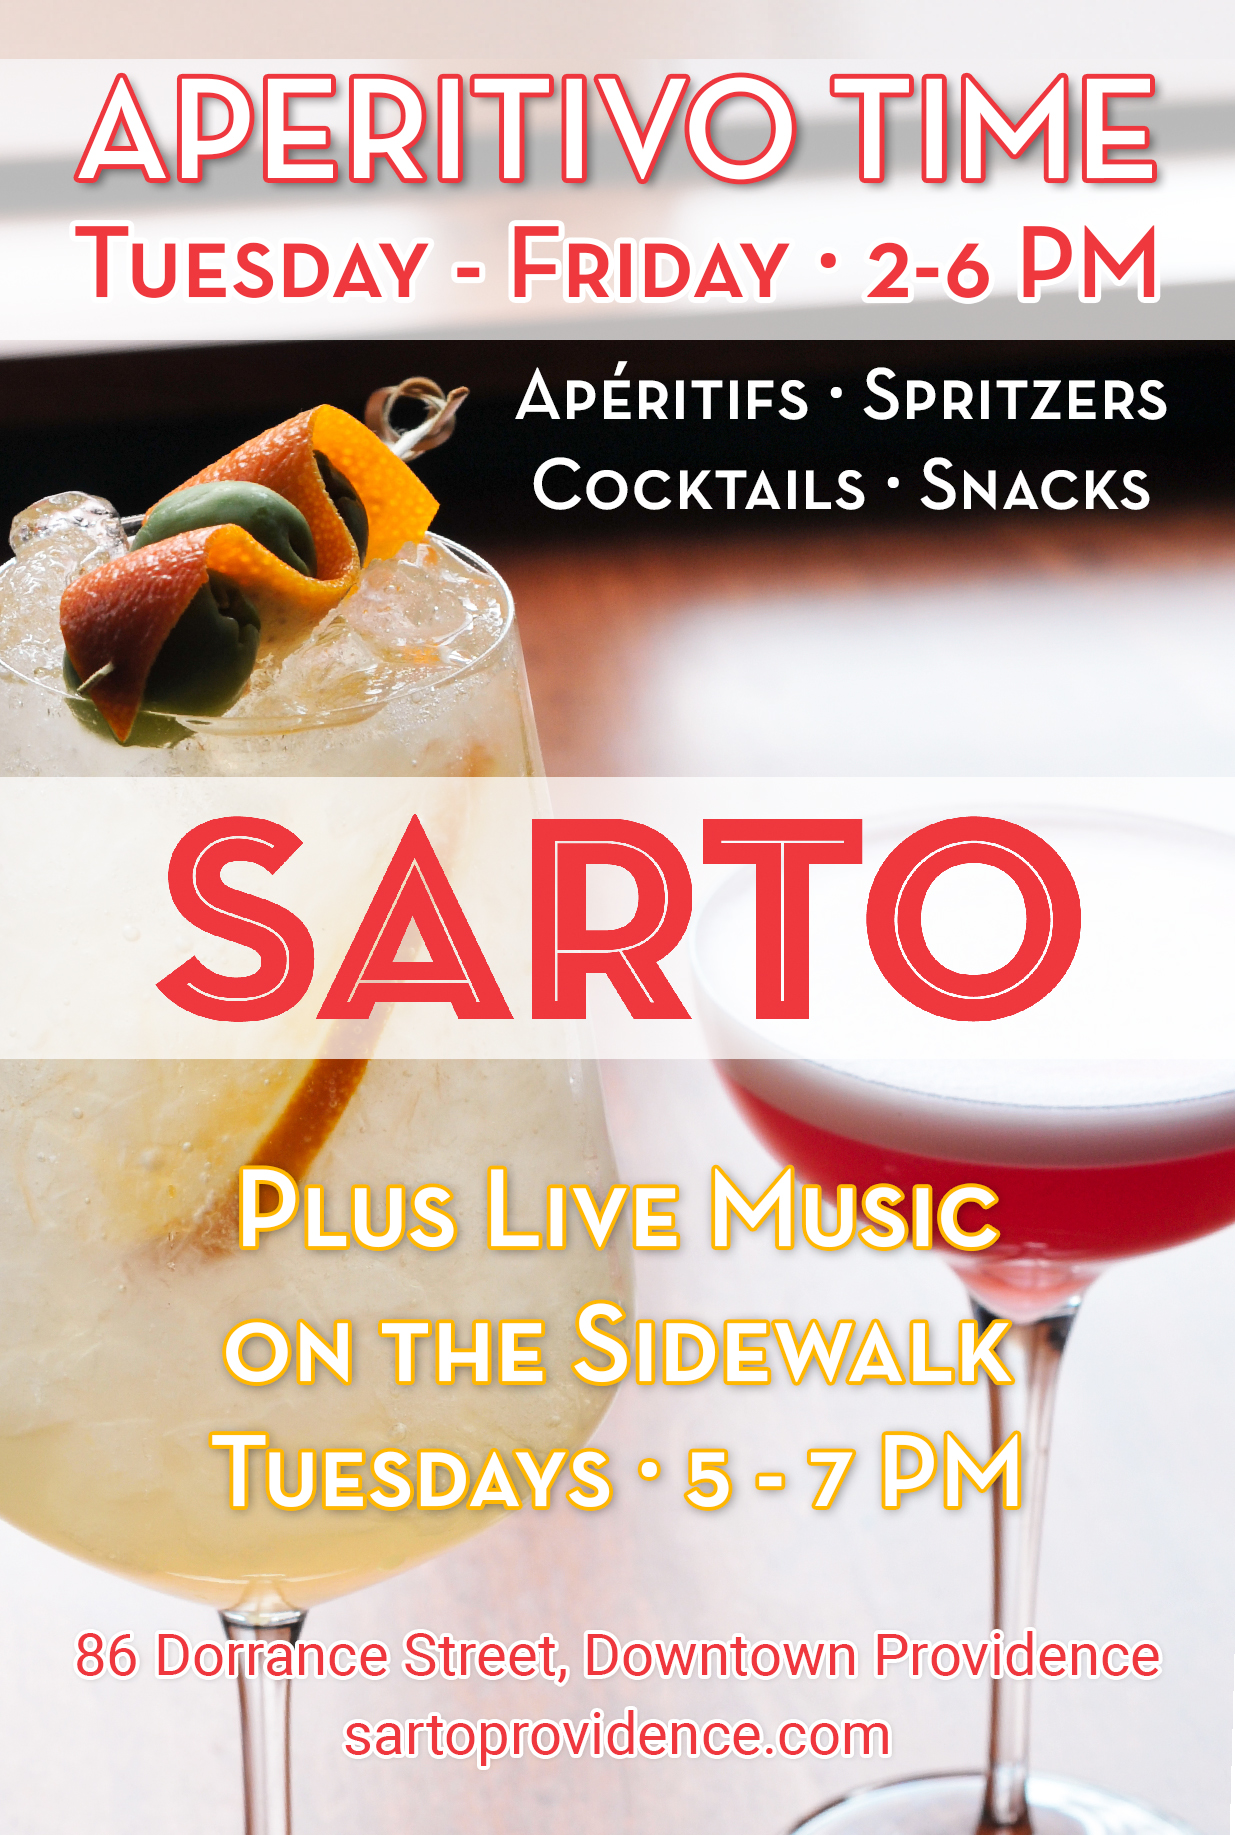 - Indulge on the Italian tradition of Aperitivo, one of the most important culinary rituals in Italy, at Downtown Providence's neighborhood bar. On Tuesdays - Fridays, visit Sarto from 2 - 6 PM and enjoy expertly crafted cocktails, spritzers, aperitifs, and snacks. Aperitivo time is meant for relaxing with friends post-work, and pre-dinner. On Tuesdays from 5 - 7 PM, we also feature live music by the incomparable Billy Musto! Come see how Aperitivo Time can turn your lethargic post-work hours into something to look forward to.